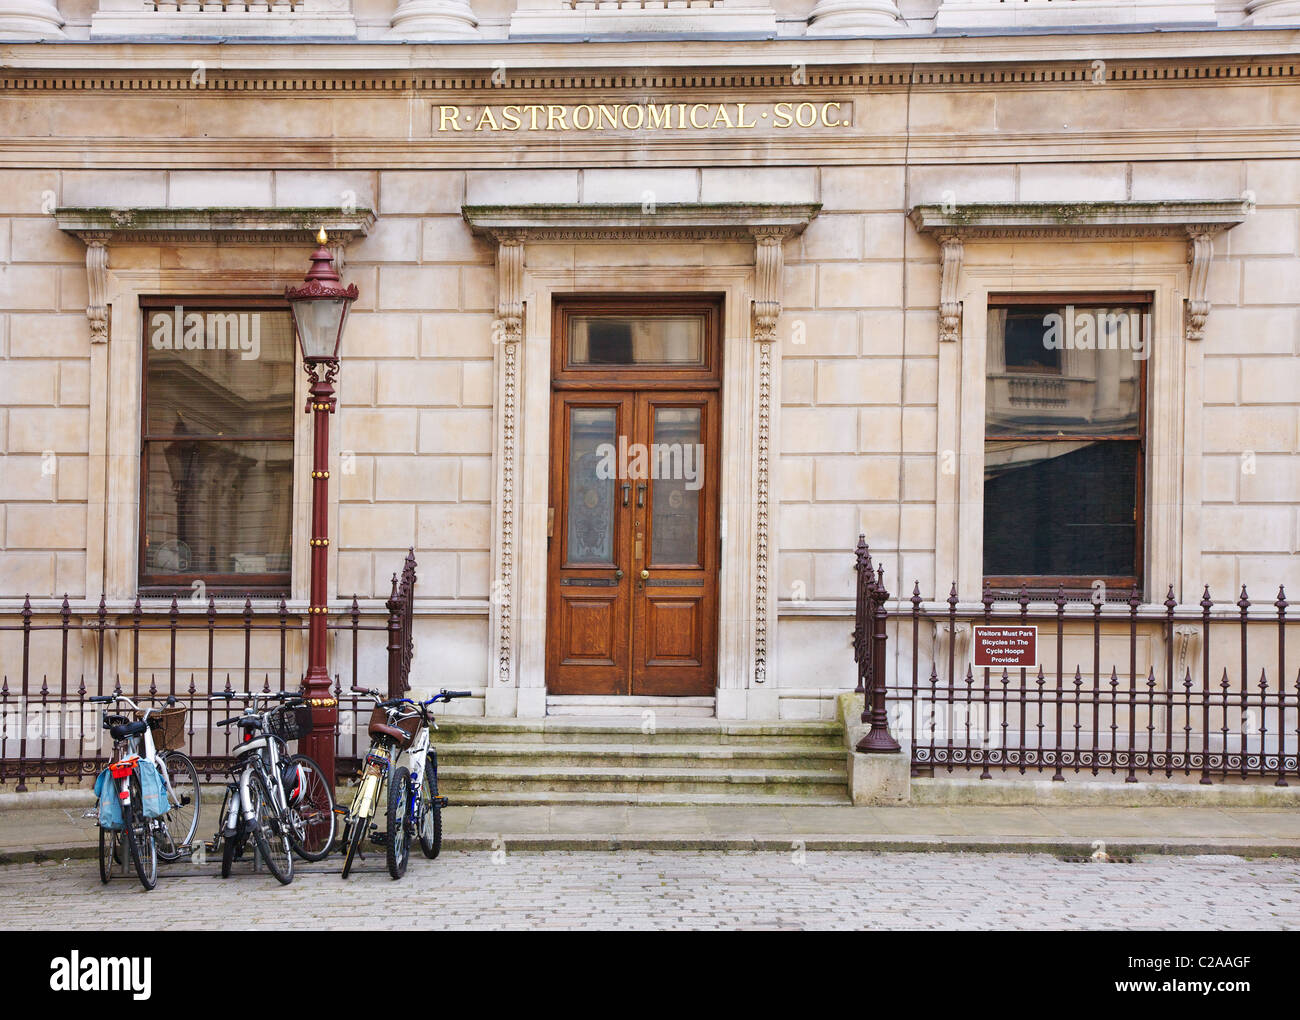 The Royal Astronomical Society building in the east wing of Burlington House in the Royal Academy courtyard in London - Stock Image